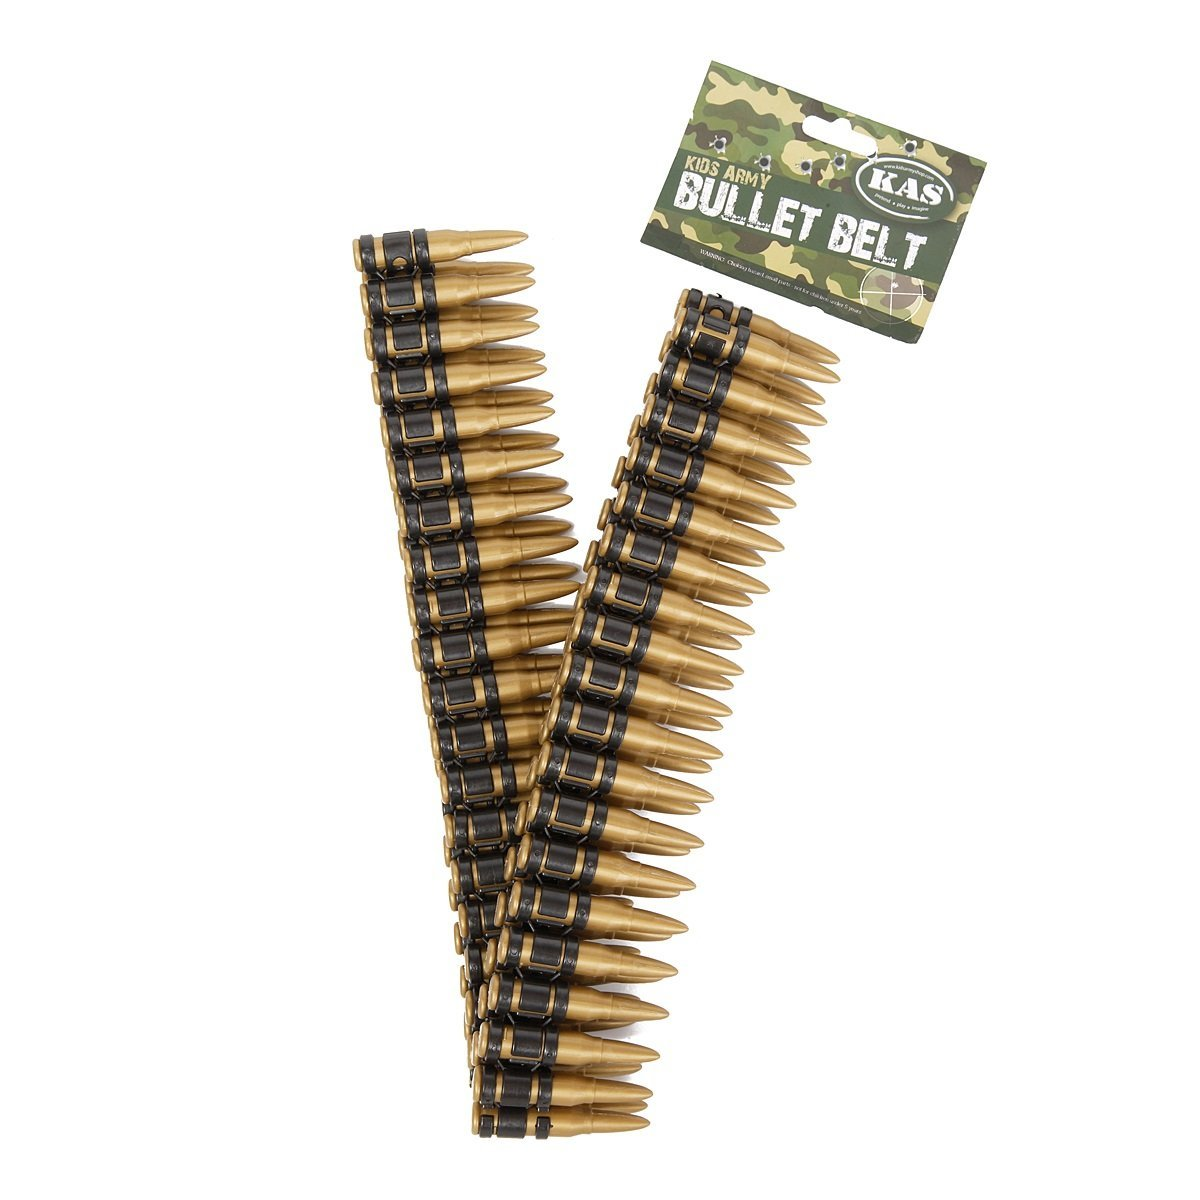 Kids Army Toy Bullet Belt 130cm Long - Toy Guns For Kids Camo Role Play